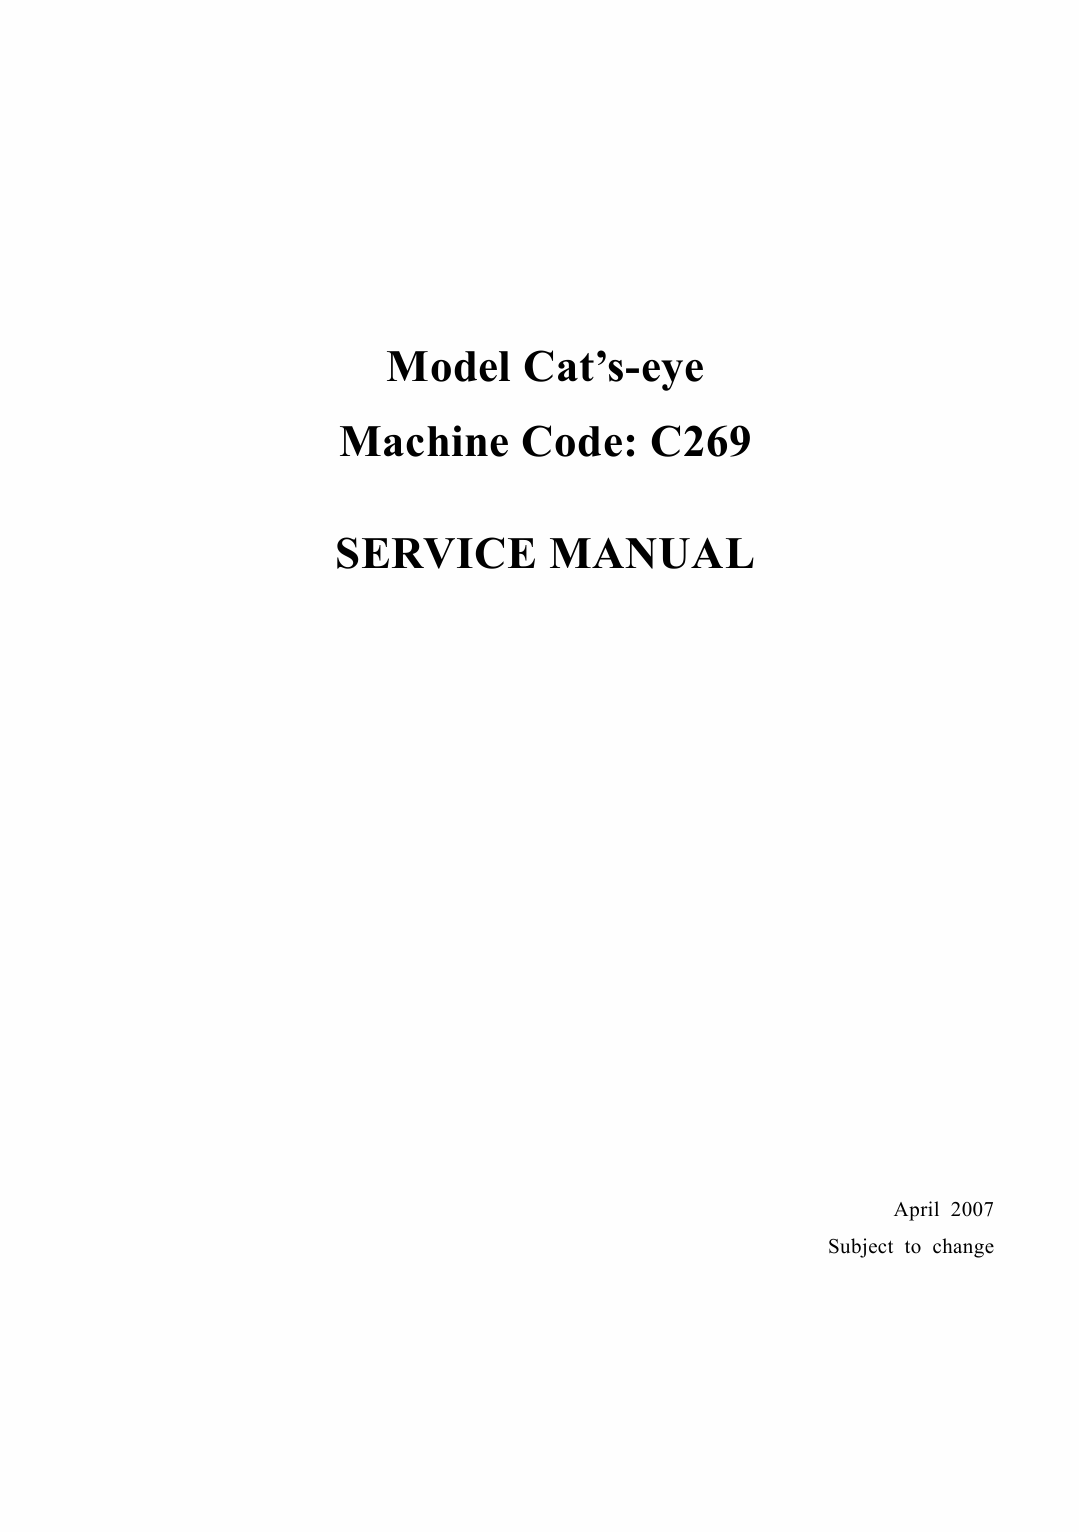 RICOH Aficio DX-4640PD C269 Service Manual-1